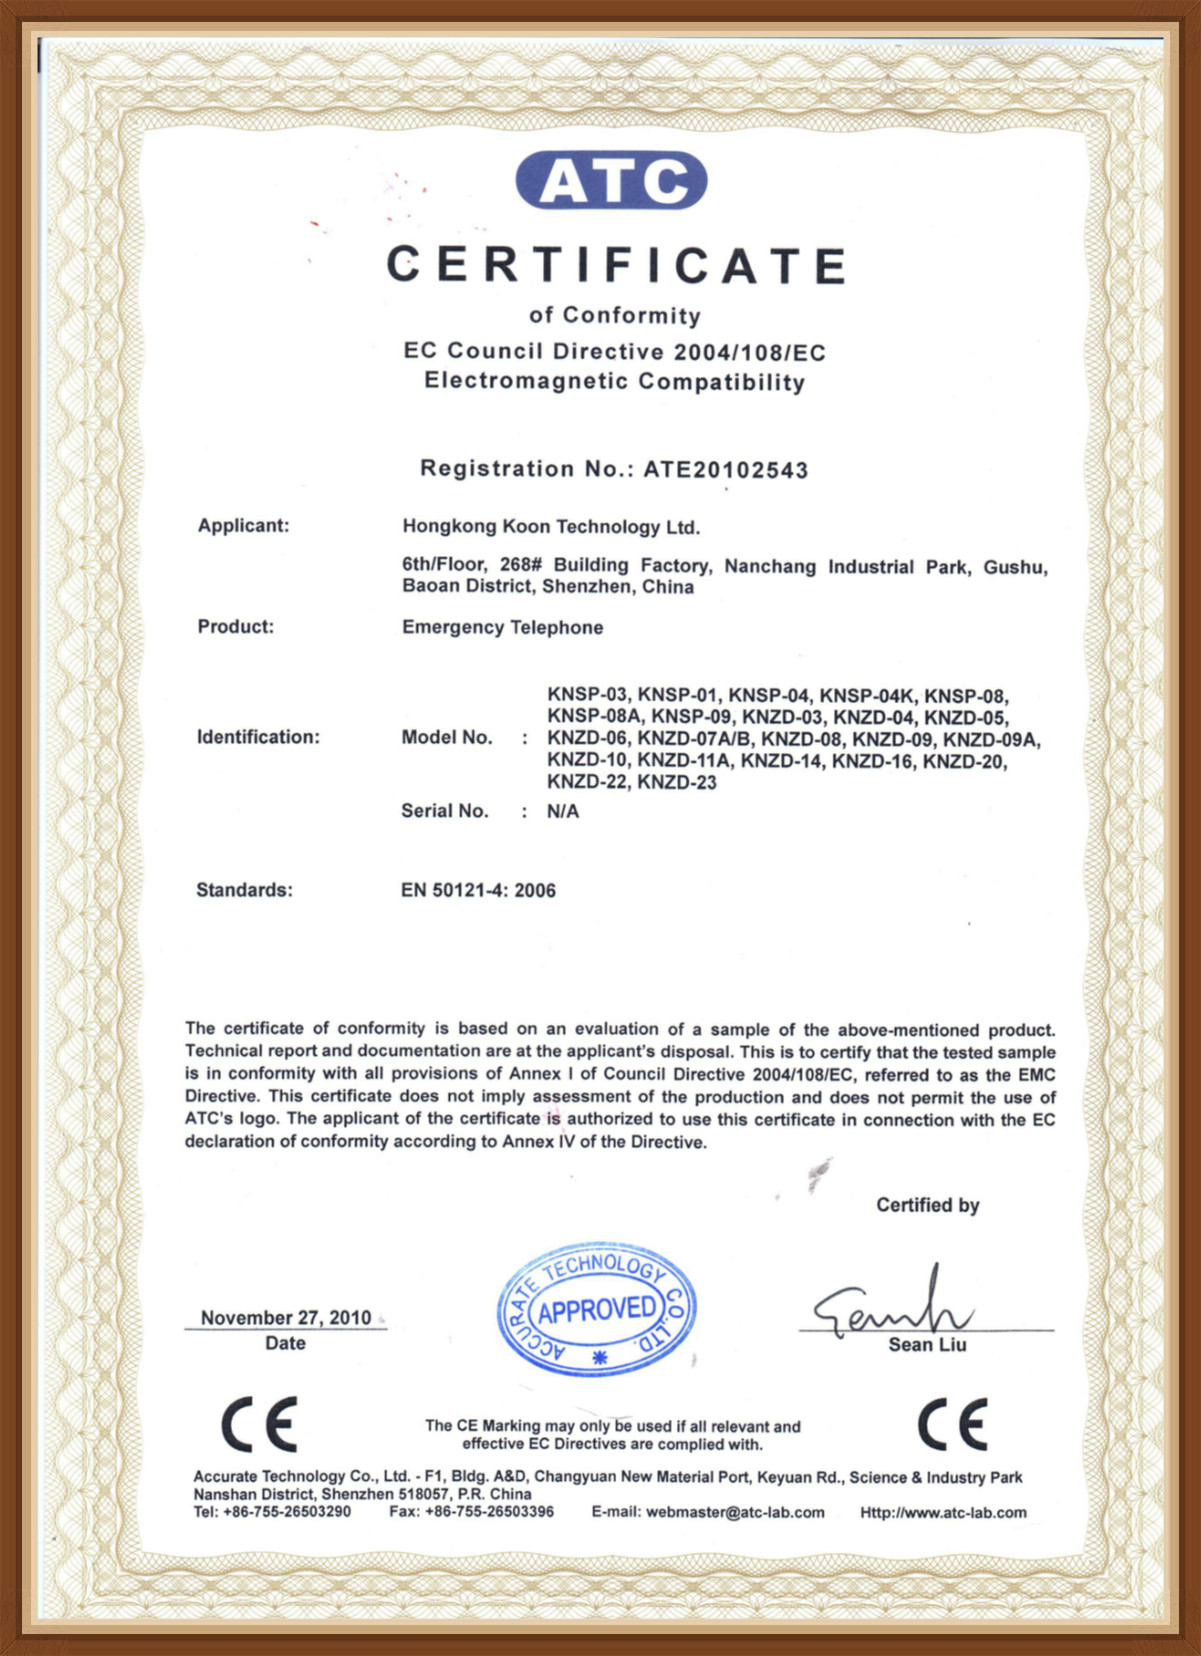 Hongkong Koon Technology Ltd Intercom Certificate